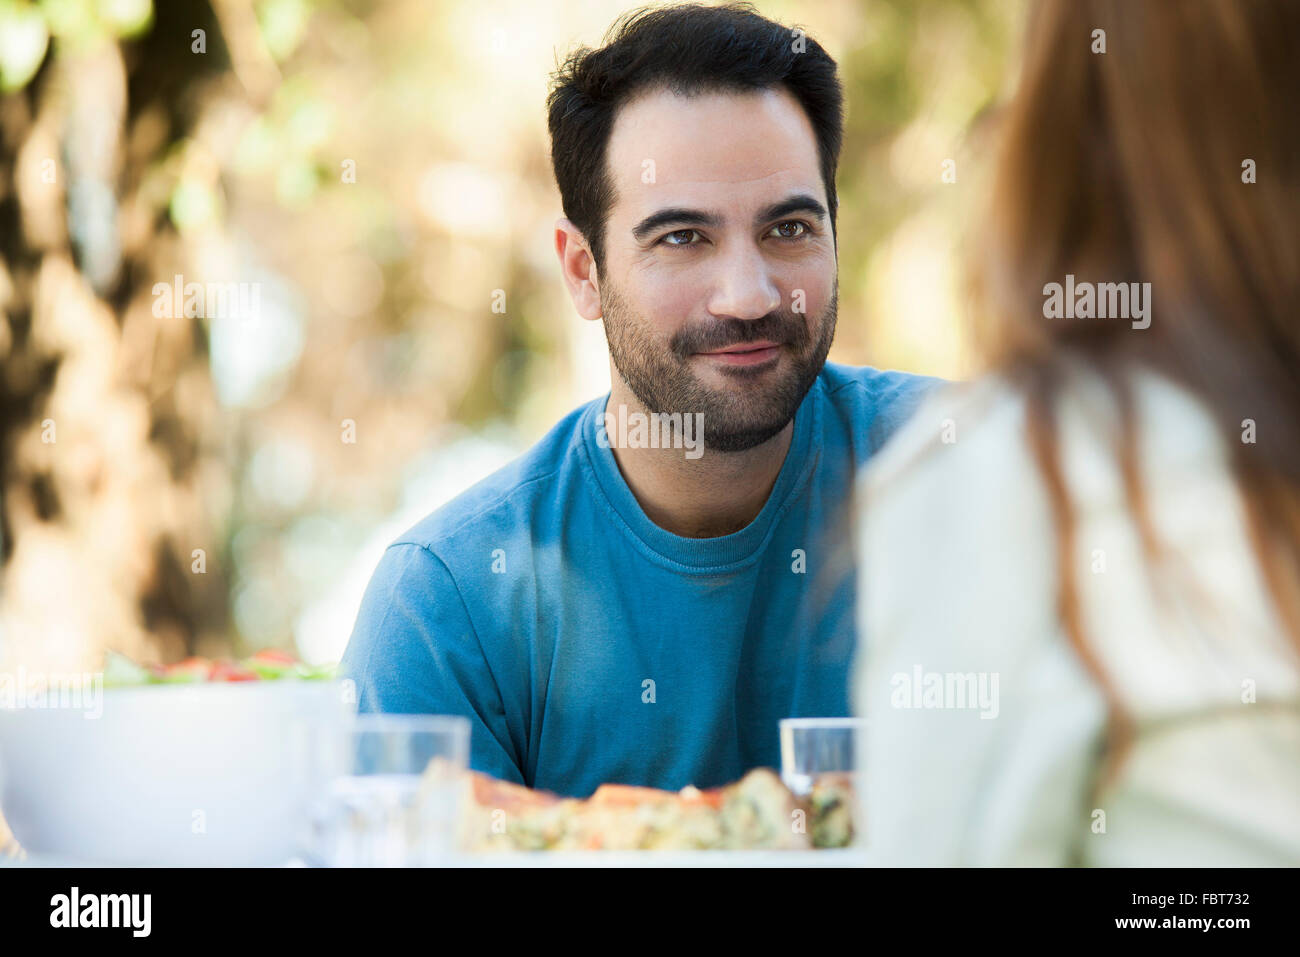 Man having meal outdoors with date Stock Photo